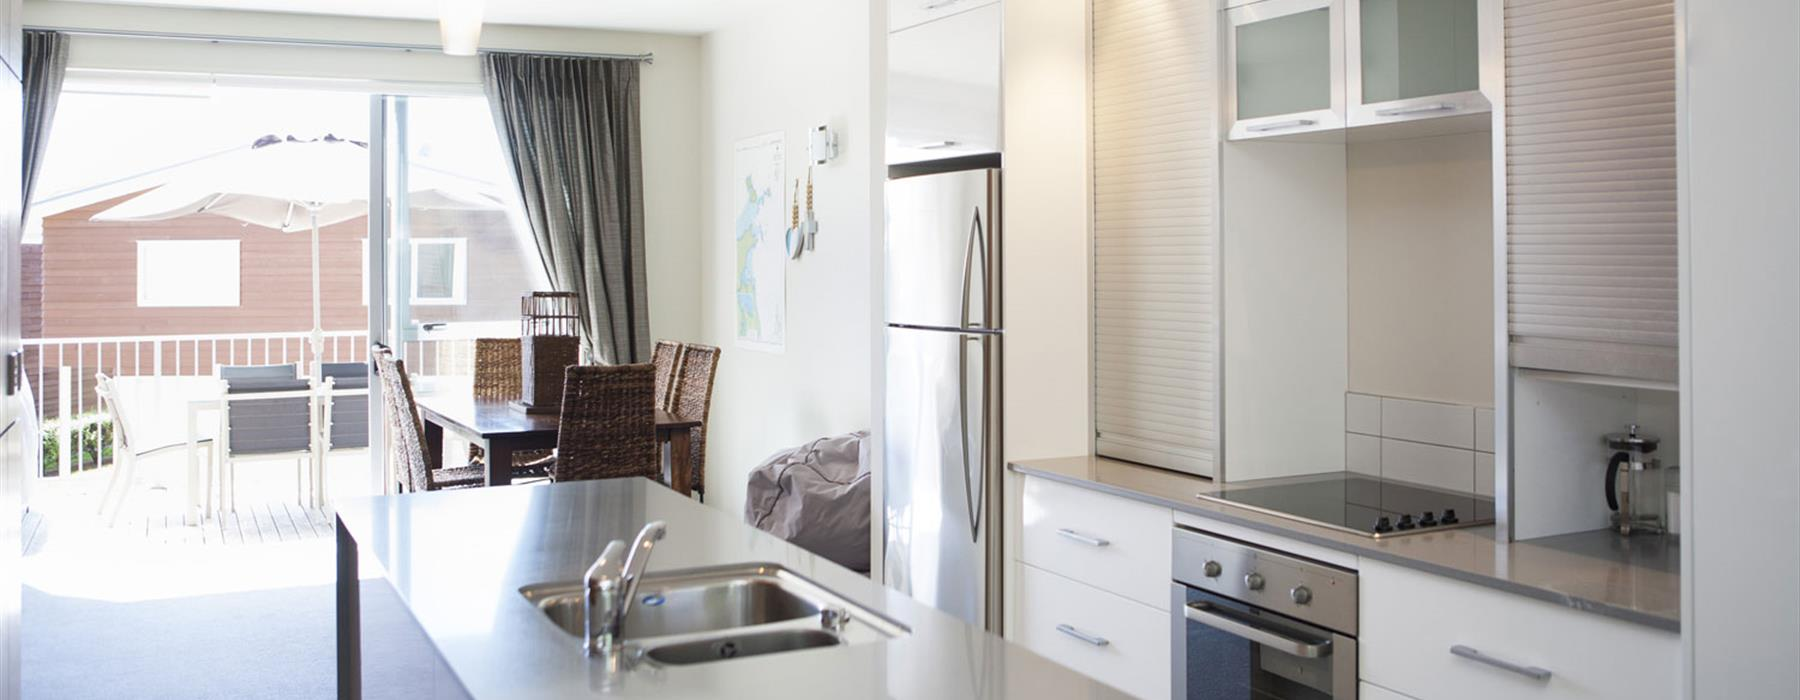 2 Night Special - 1 Bedroom Apartment